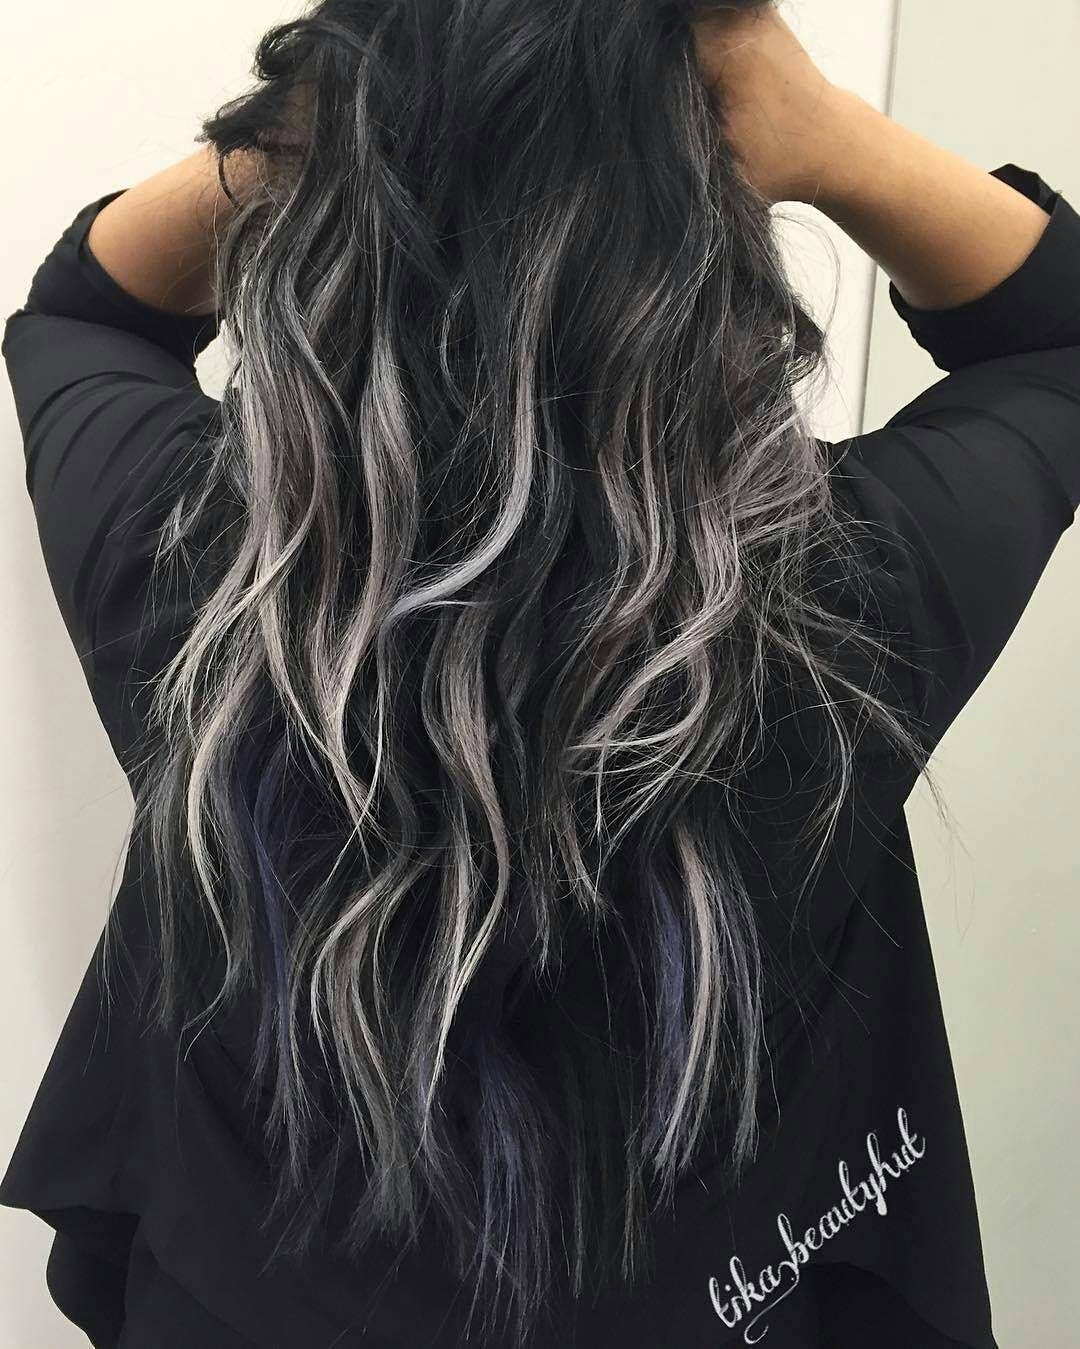 pin by adrienne spencer on hair and beauty | hair styles